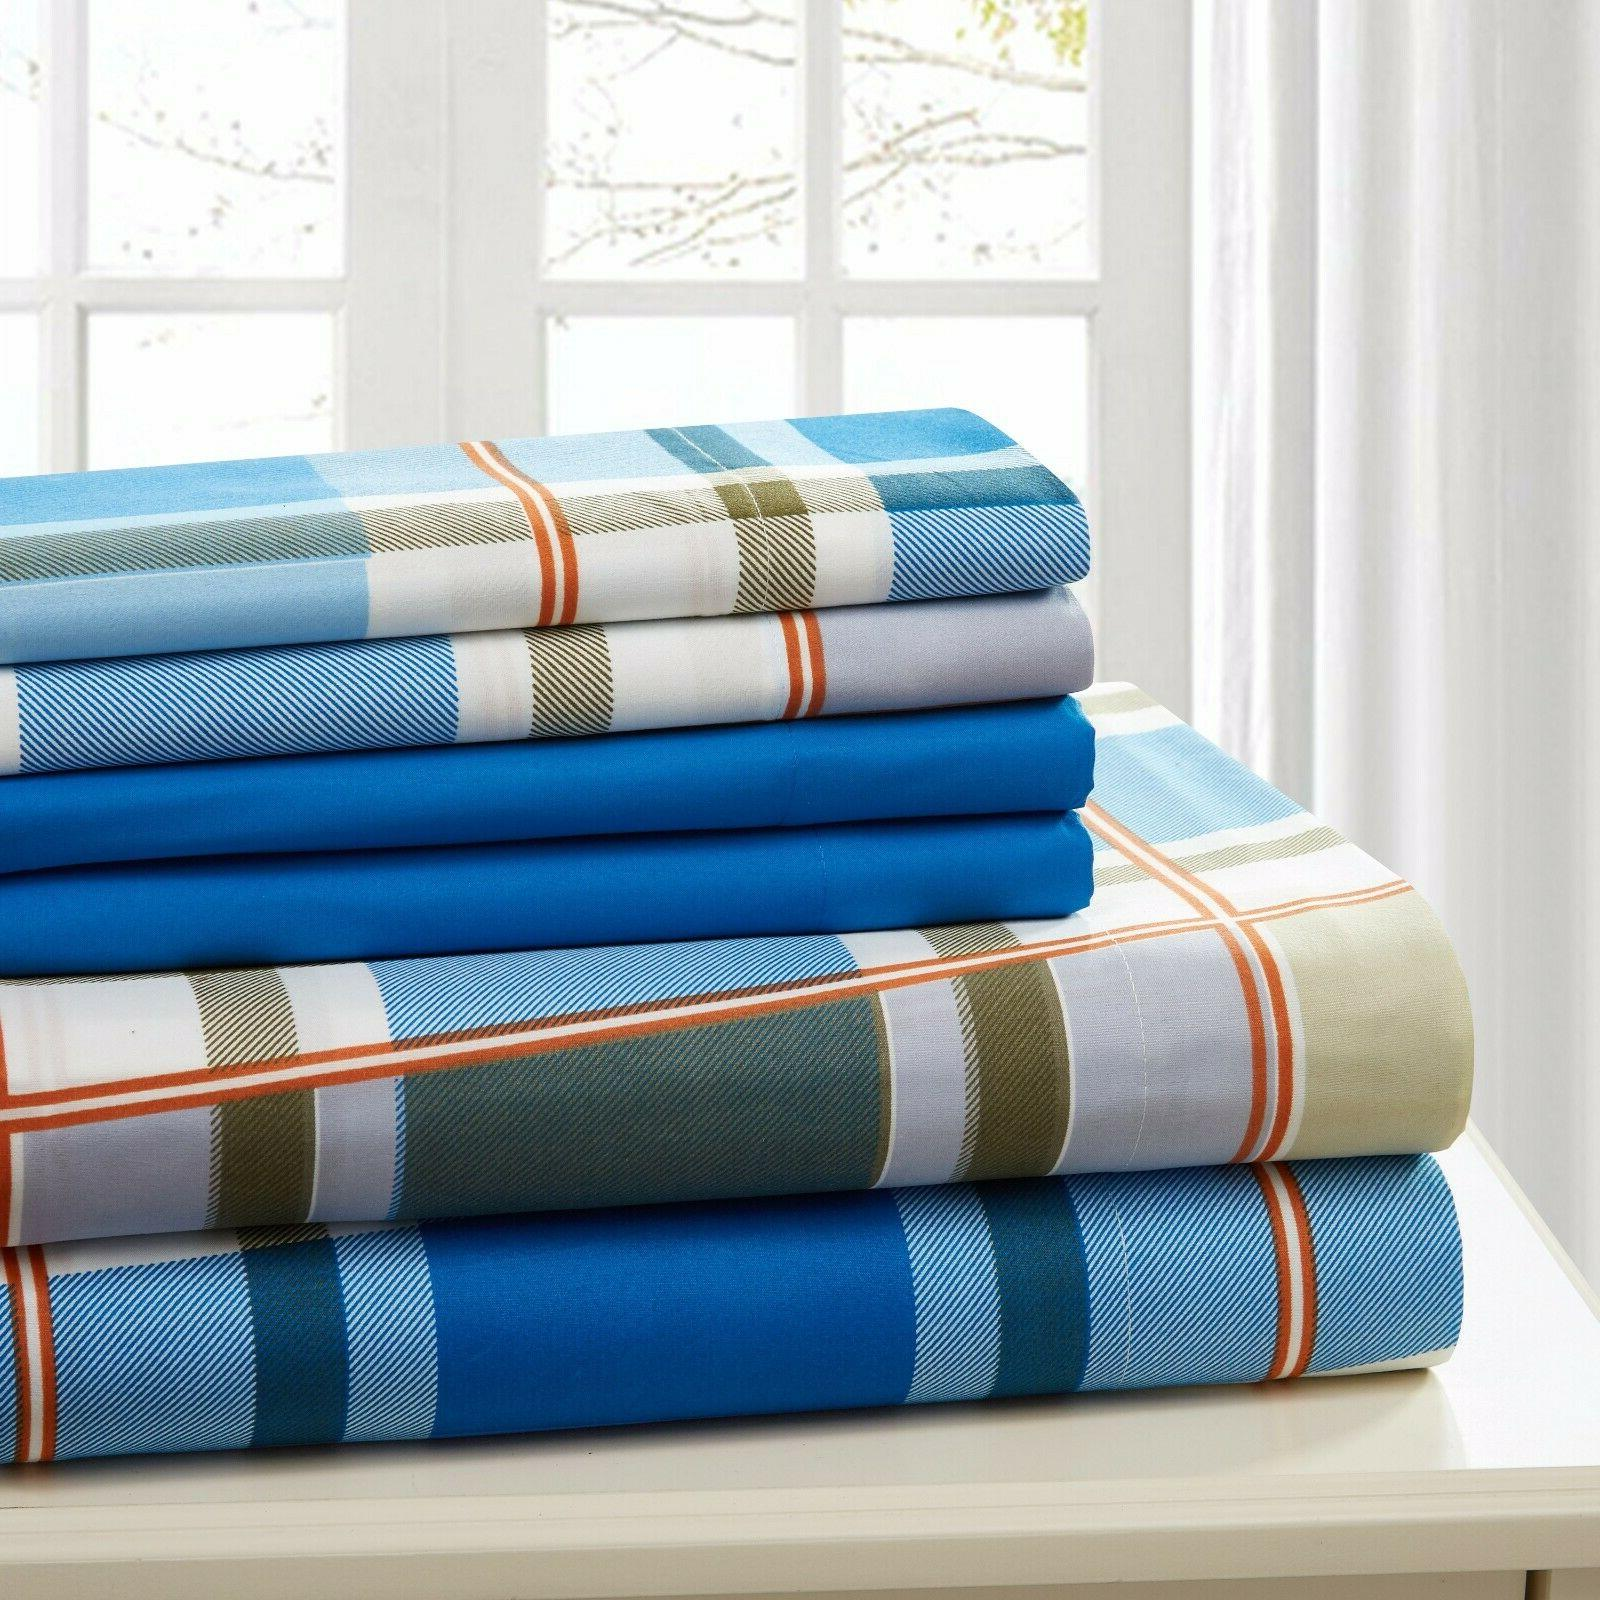 COTTON PERCALE 6 PC SHEET SET PRINTED SOFT TWIN FULL QUEEN K